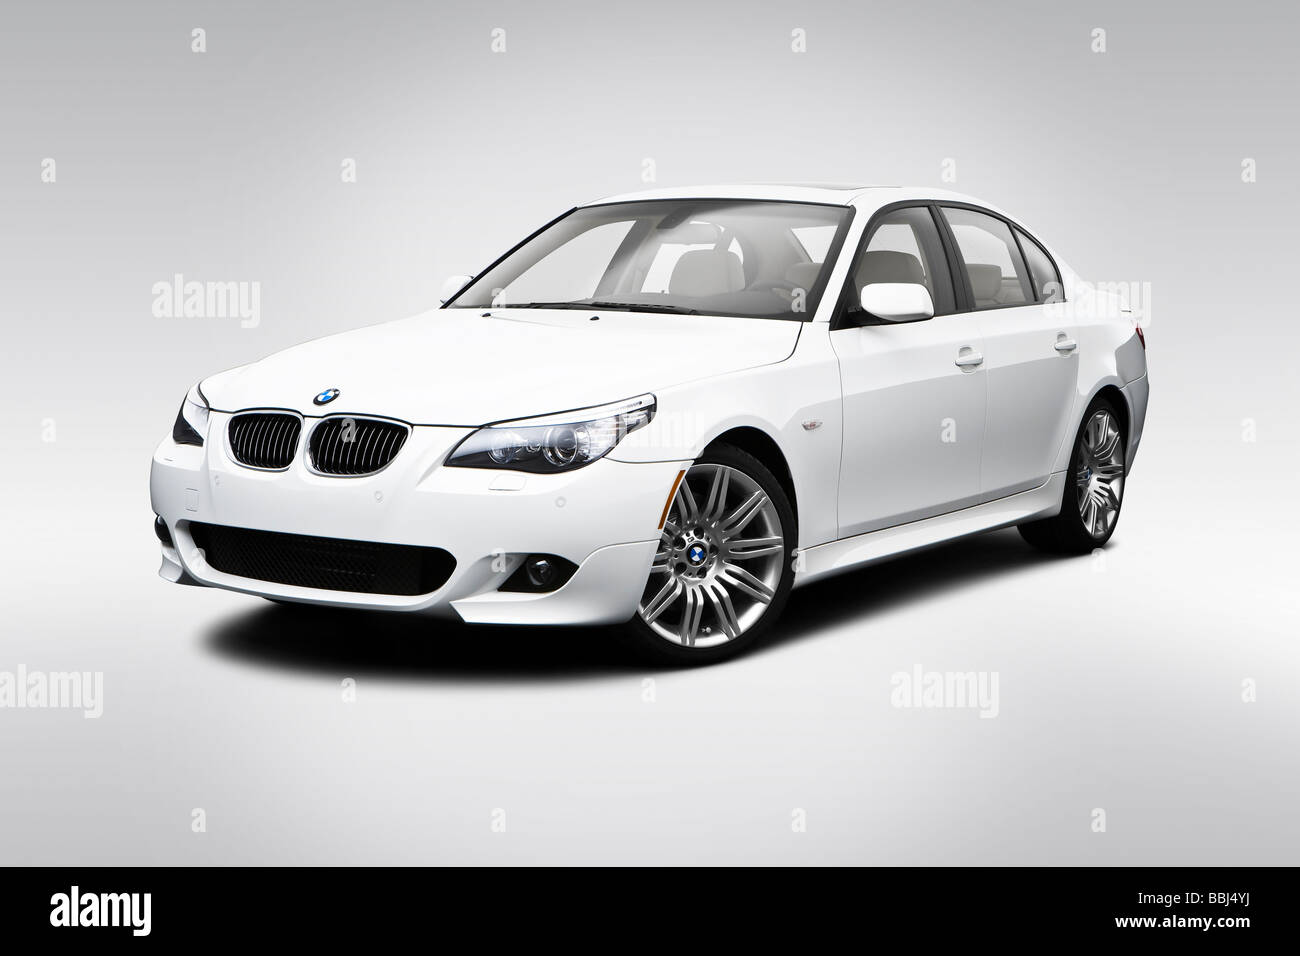 2009 bmw 5 series 550i in white front angle view stock. Black Bedroom Furniture Sets. Home Design Ideas